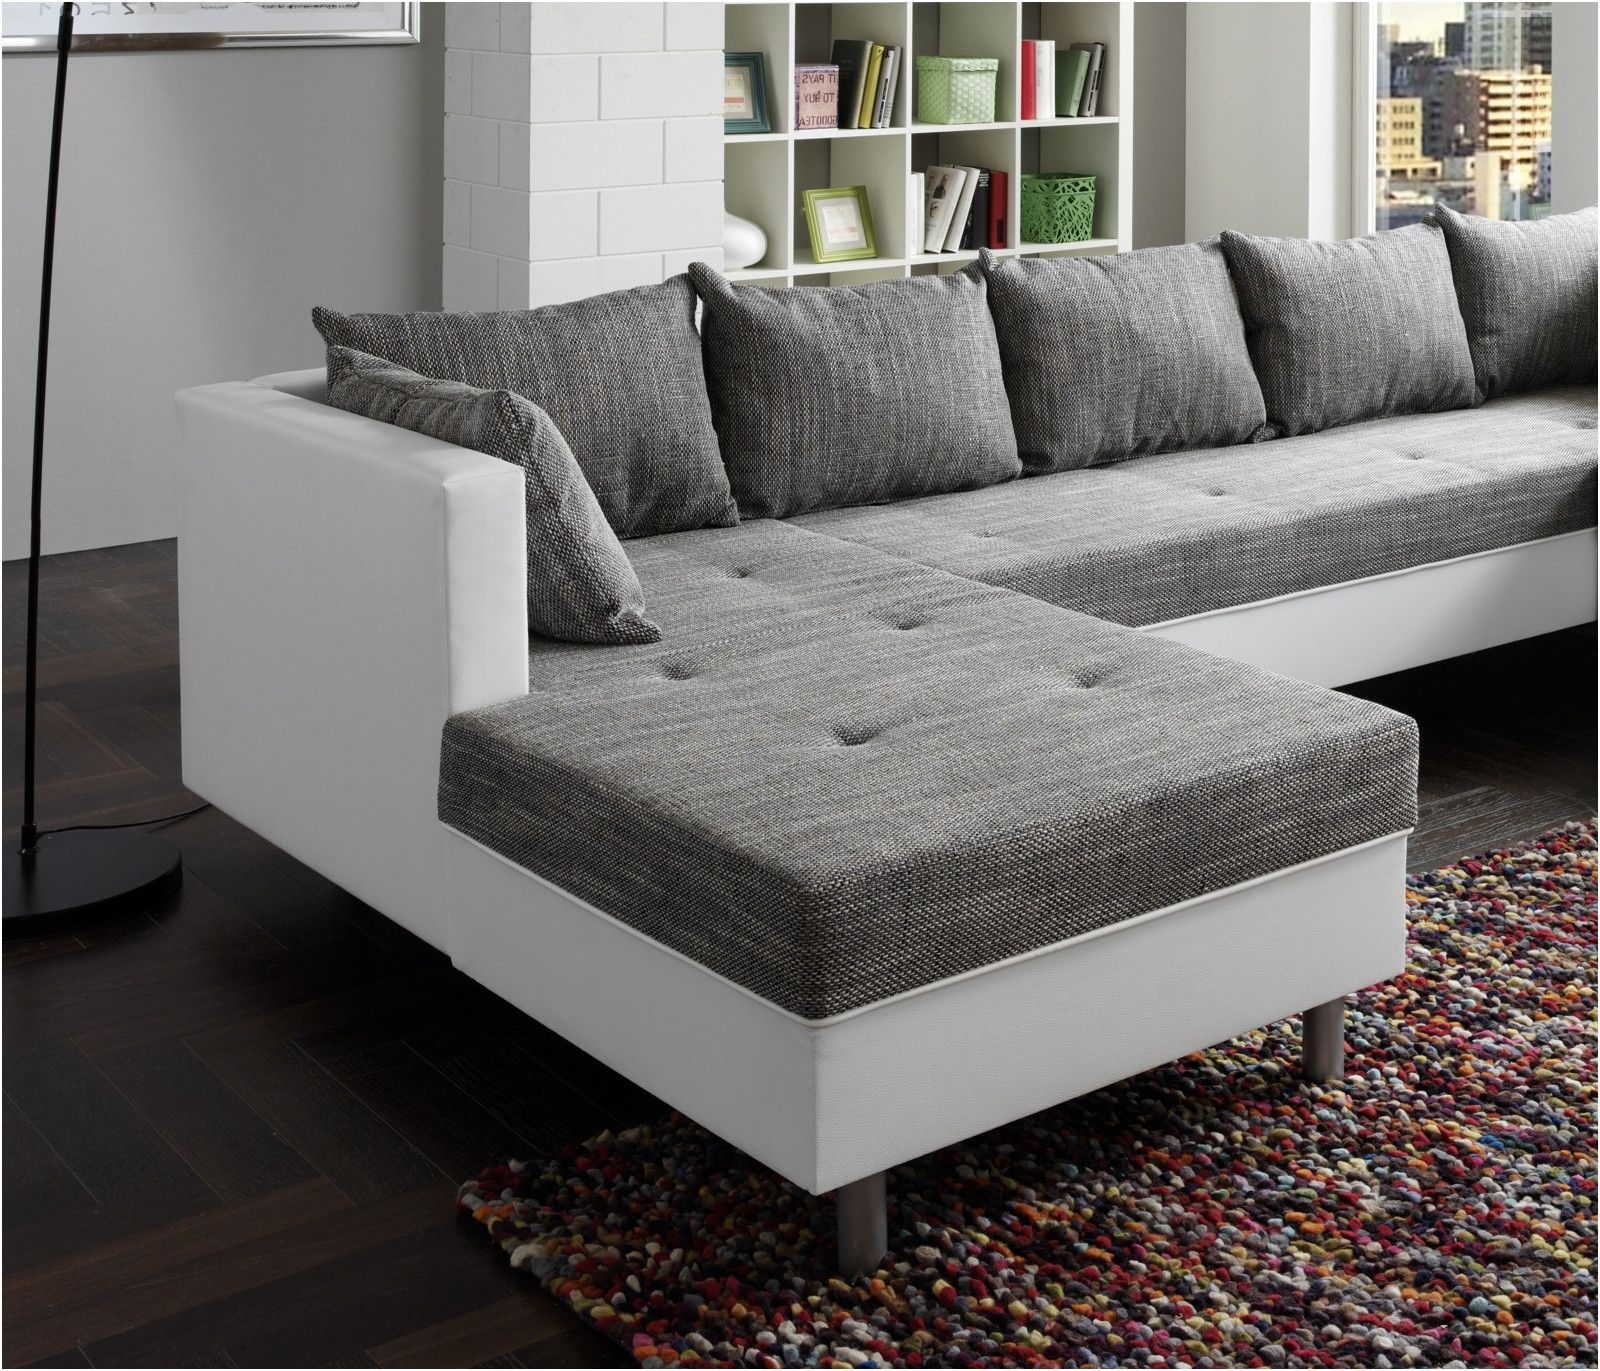 Fabulous Big Sofa Möbel Boss Big Sofas Home Decor Home